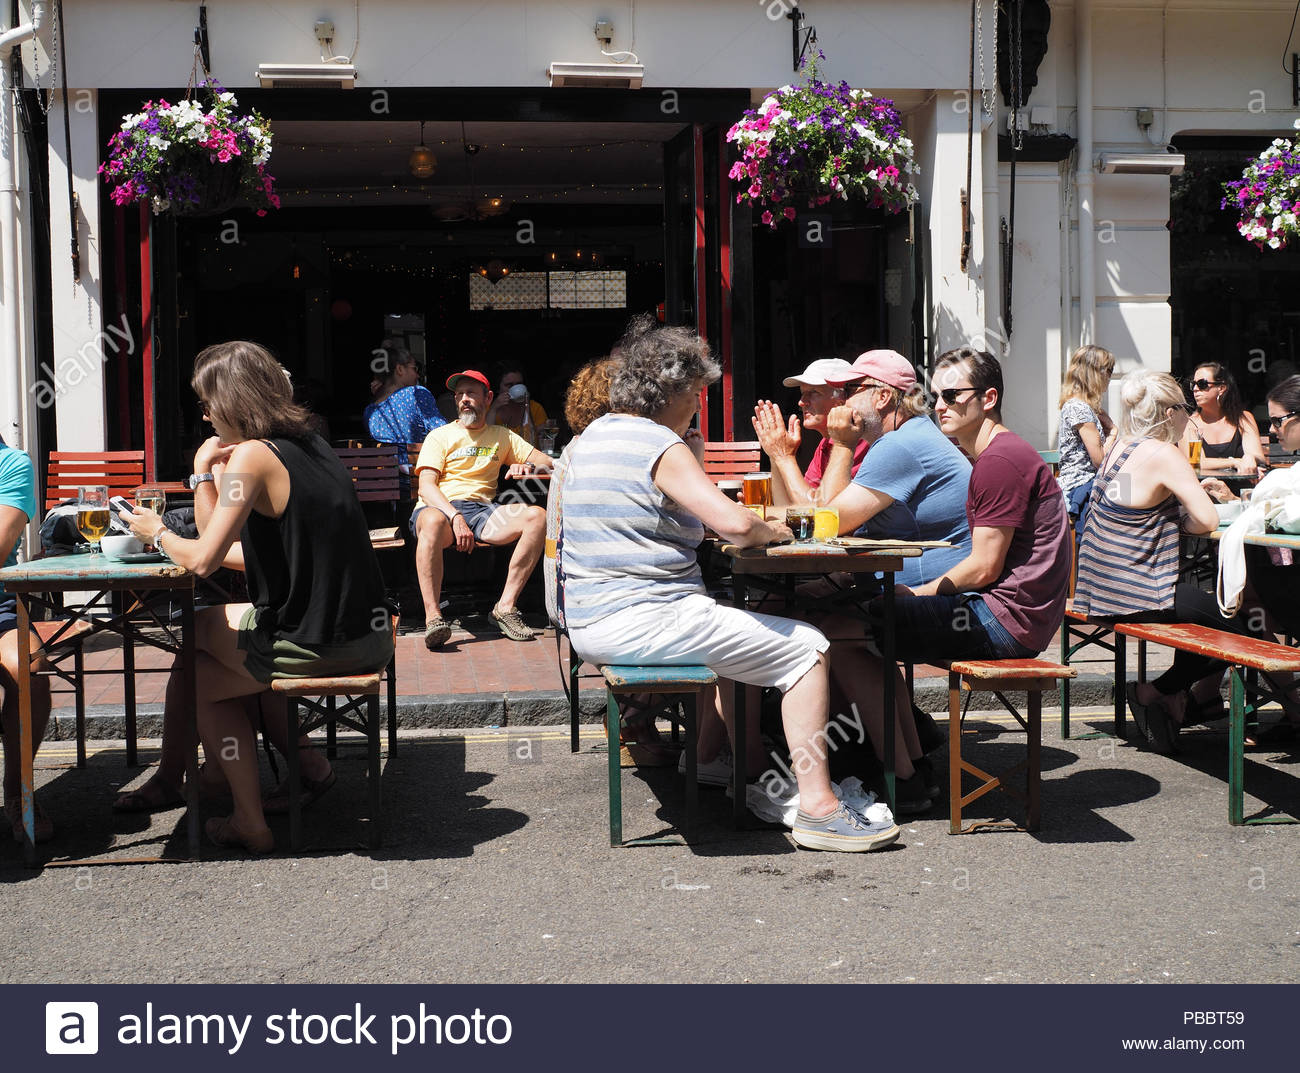 People sitting at pavement tables in the hot sunshine, Brighton Lanes, England, UK, Summer 2018 - Stock Image